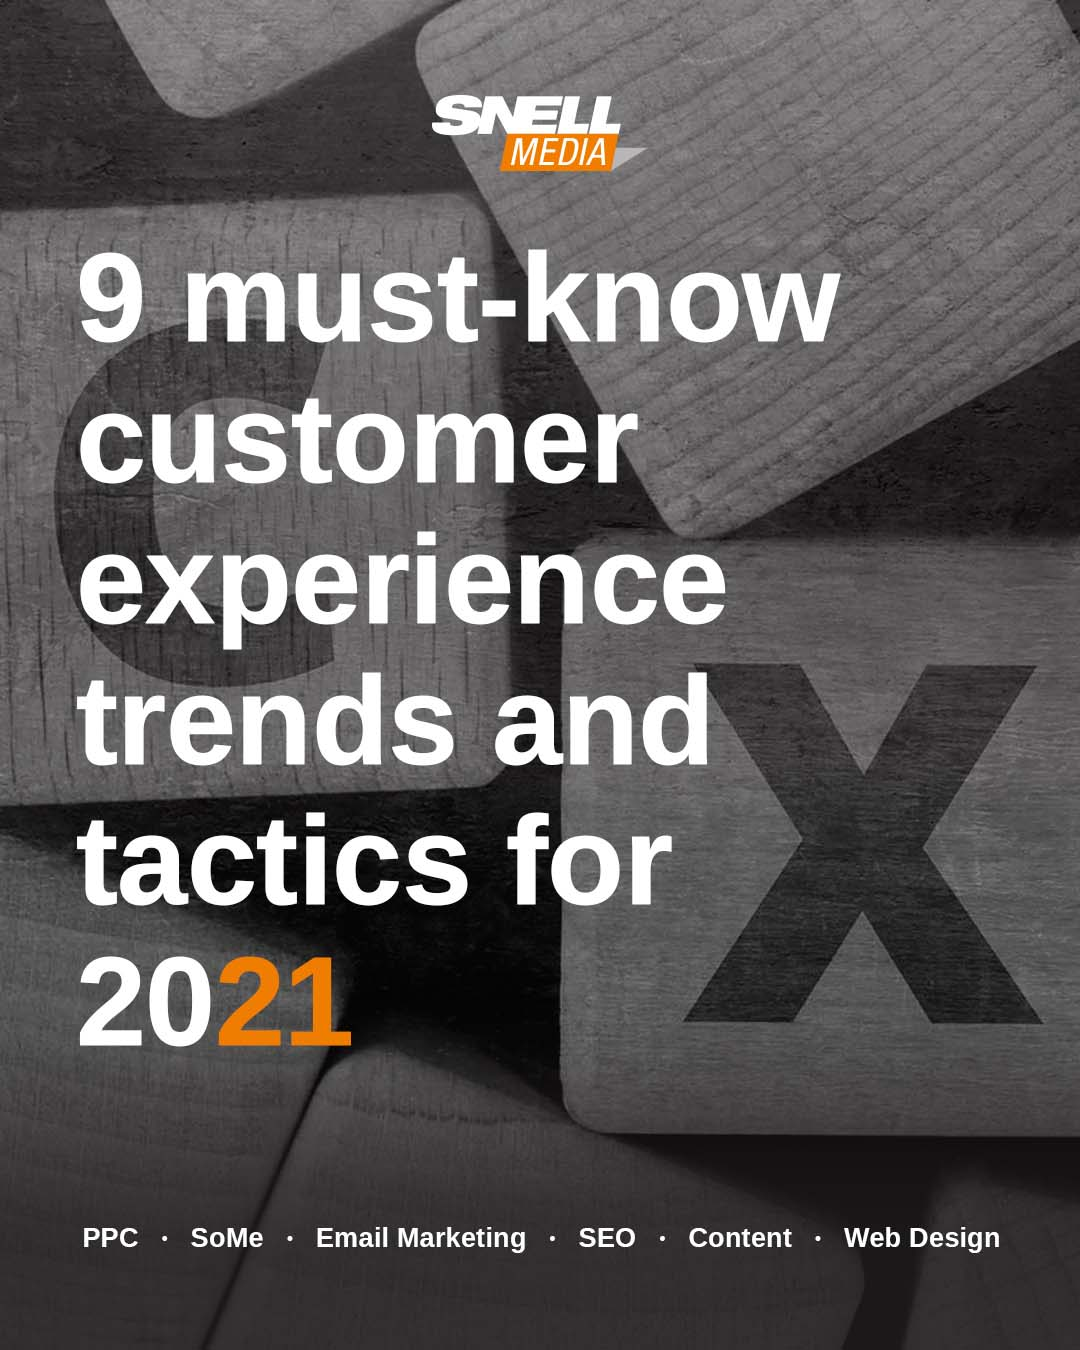 Top CX (Customer Experience) Trends and Tactics for 2021